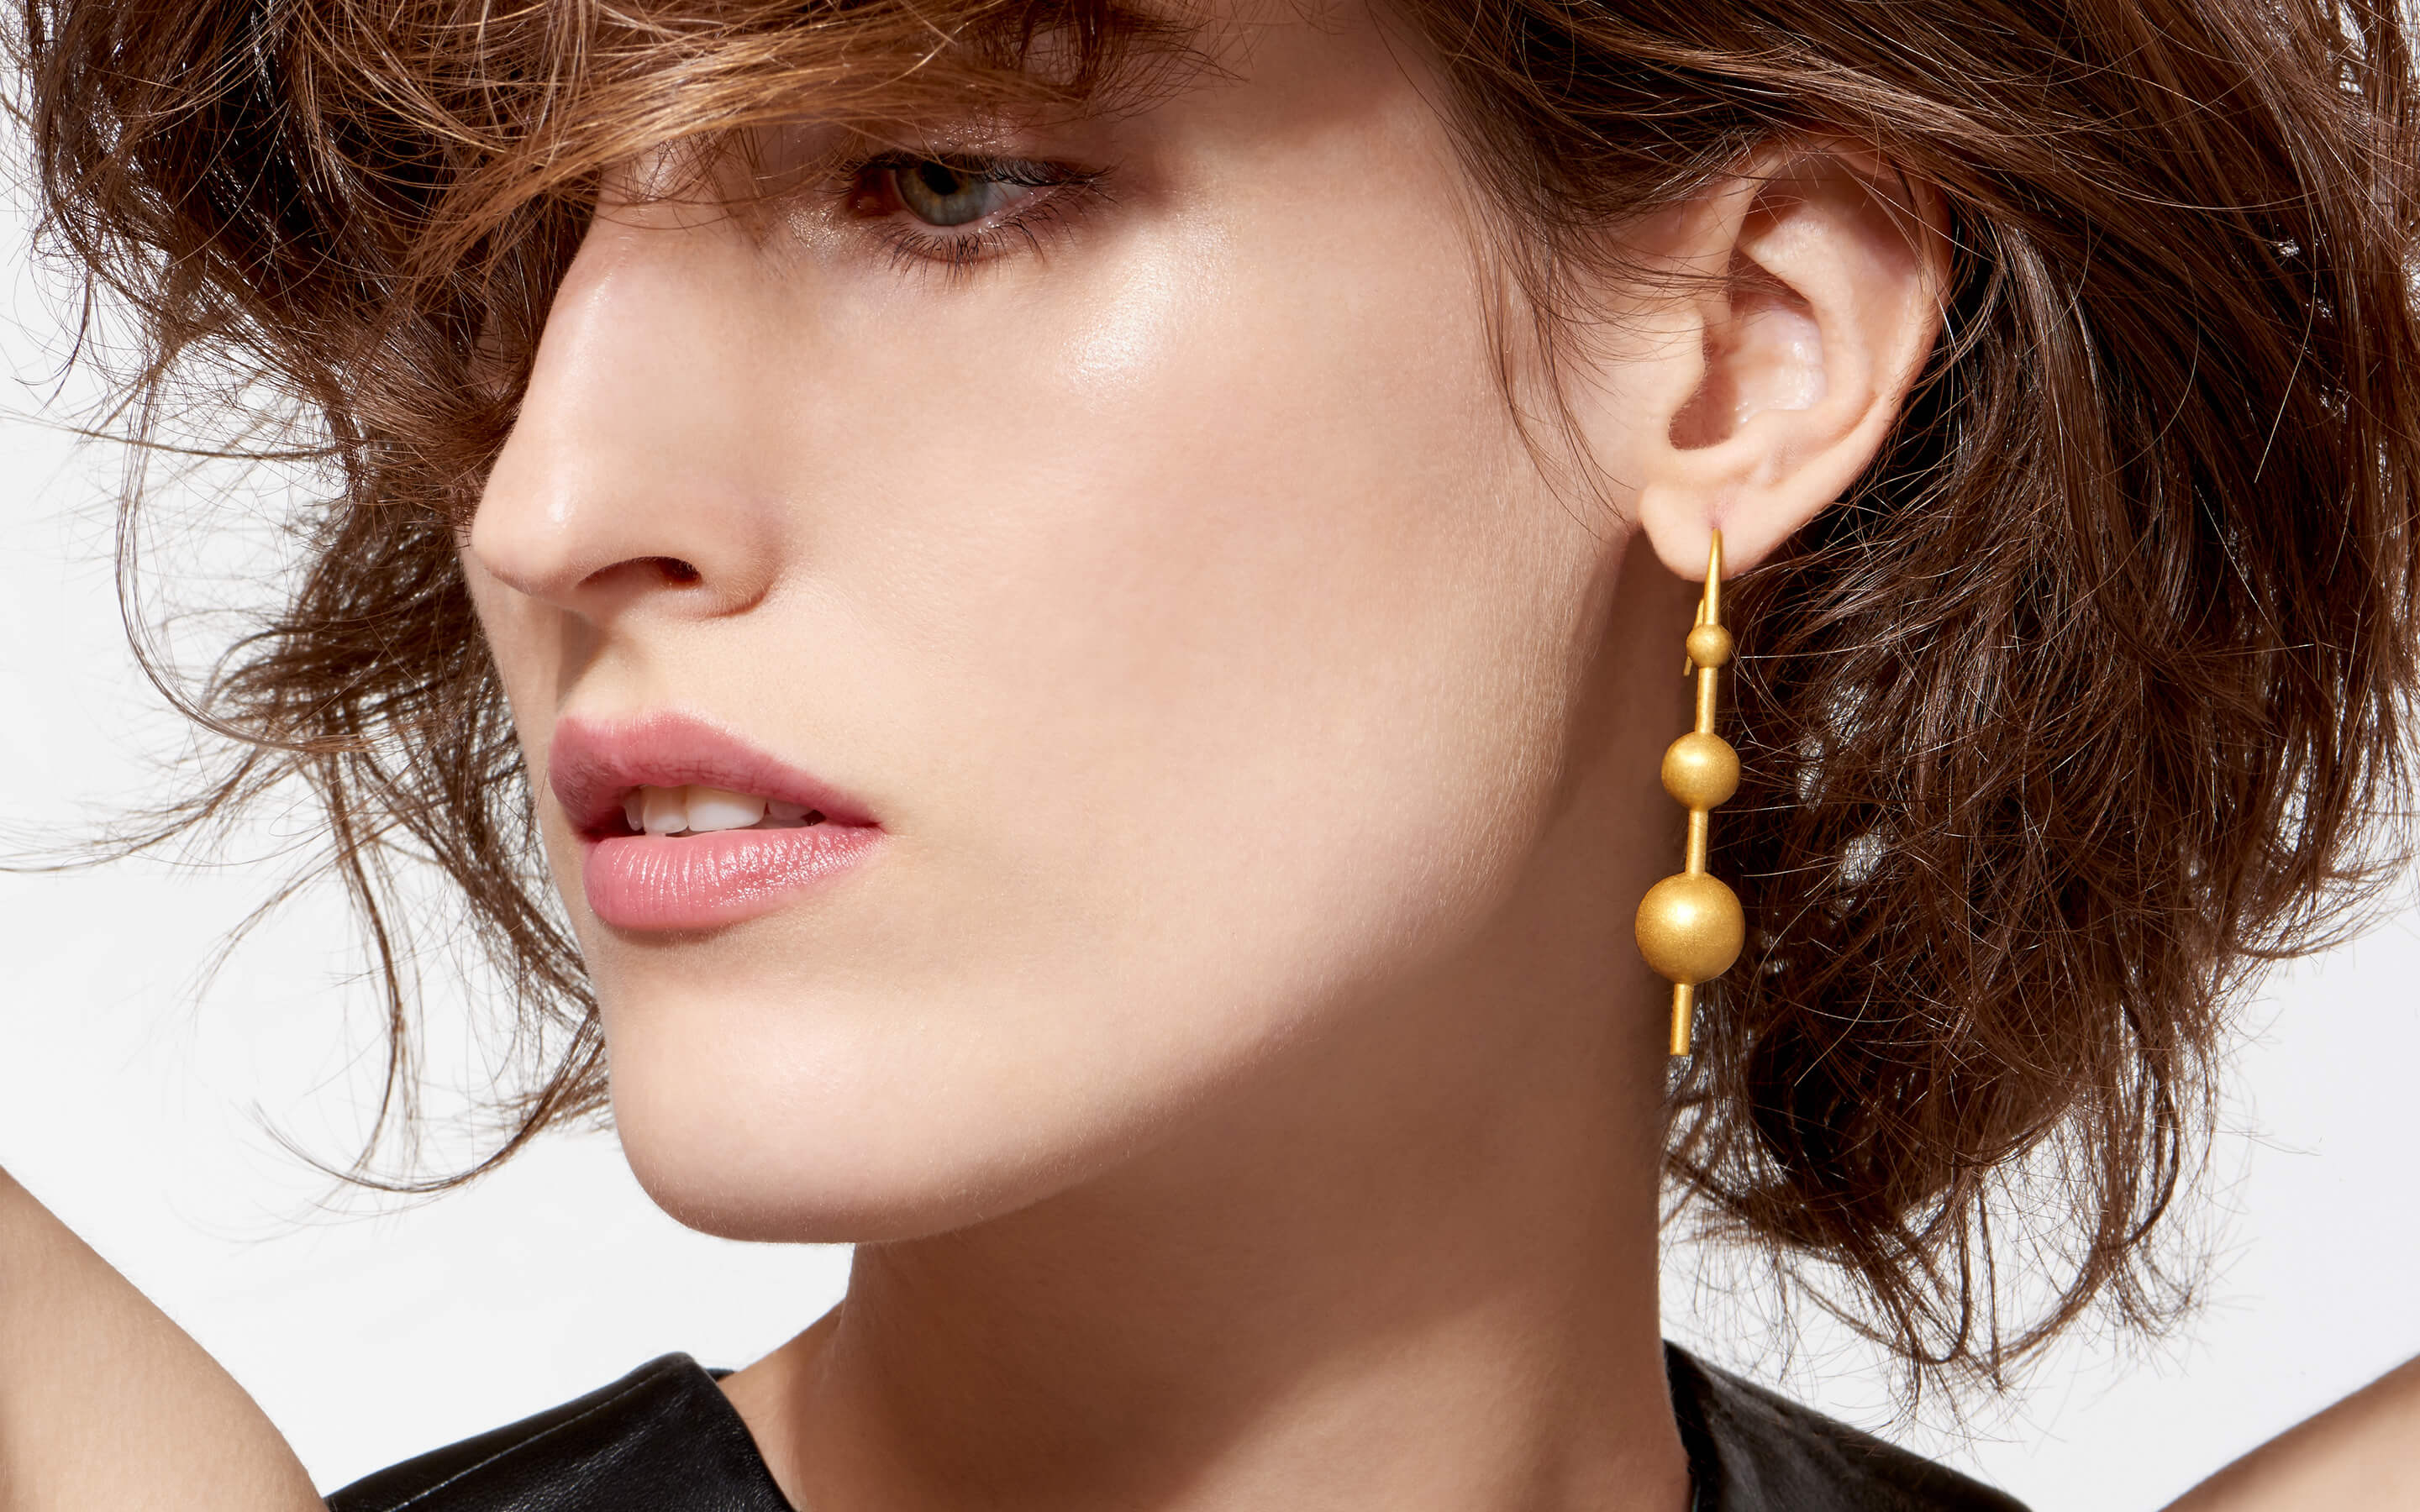 white female model gazing pensively graced with 22 karat gold post earrings containing three globes